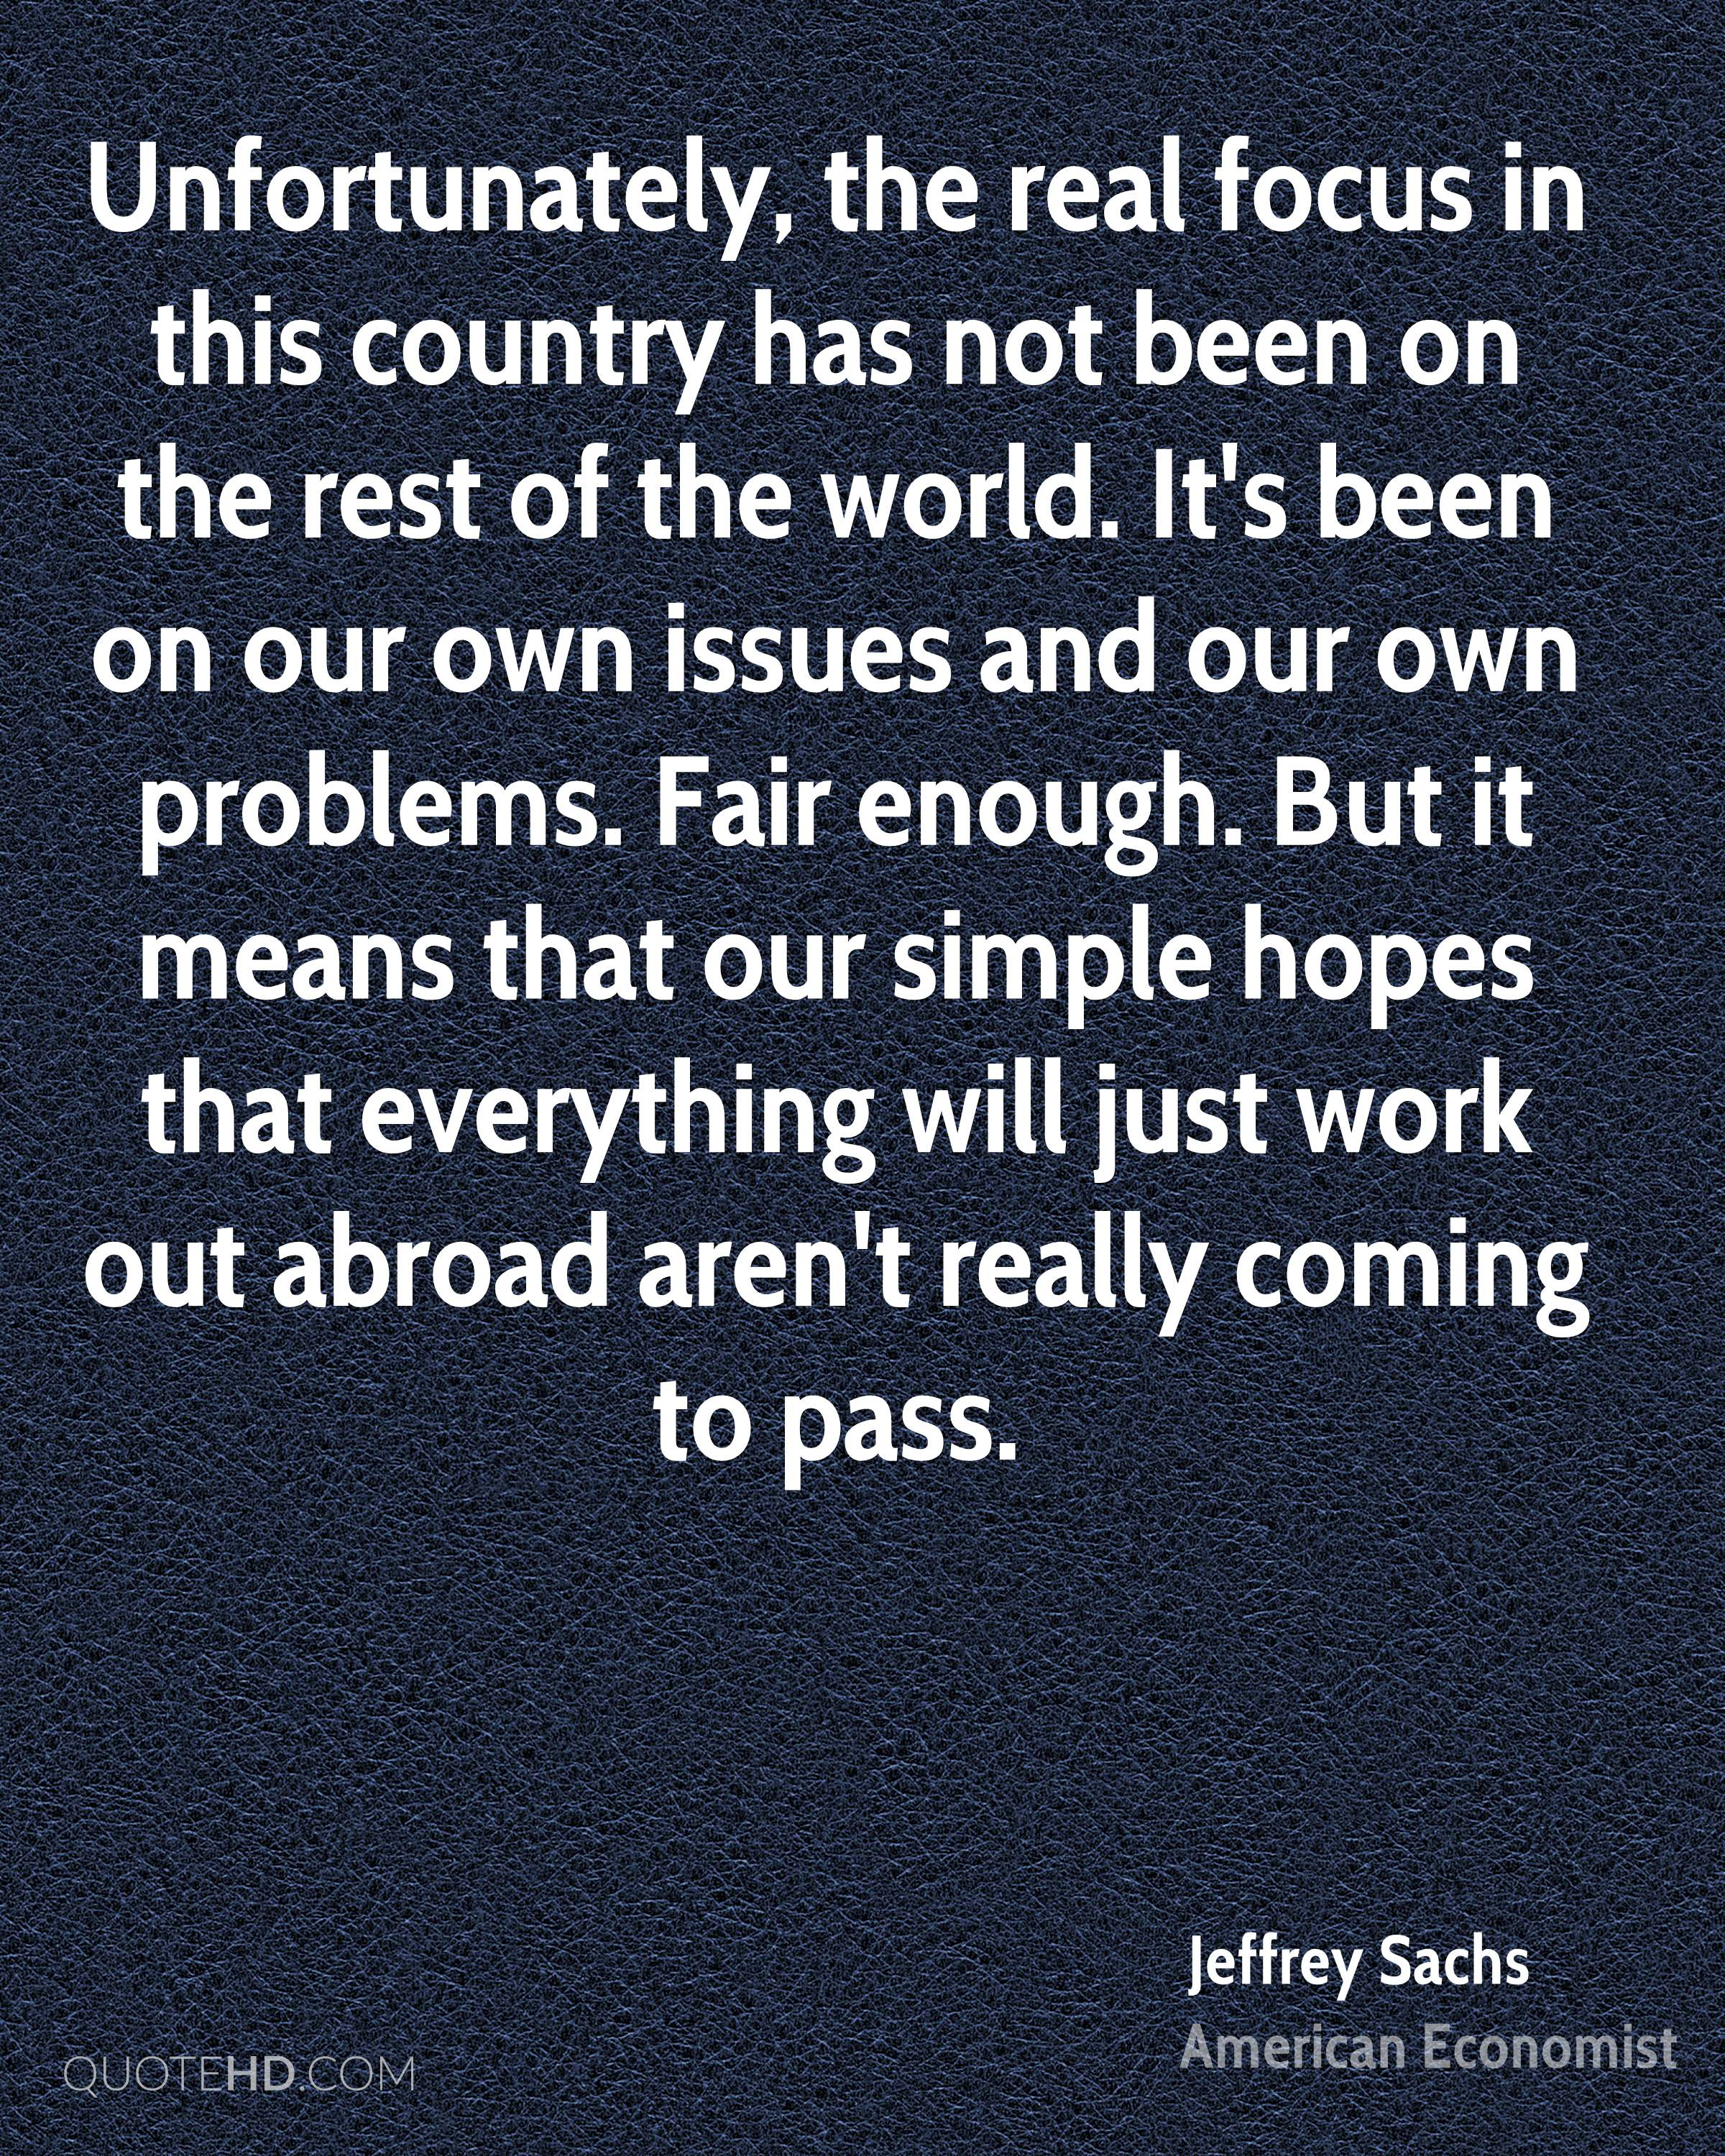 Unfortunately, the real focus in this country has not been on the rest of the world. It's been on our own issues and our own problems. Fair enough. But it means that our simple hopes that everything will just work out abroad aren't really coming to pass.